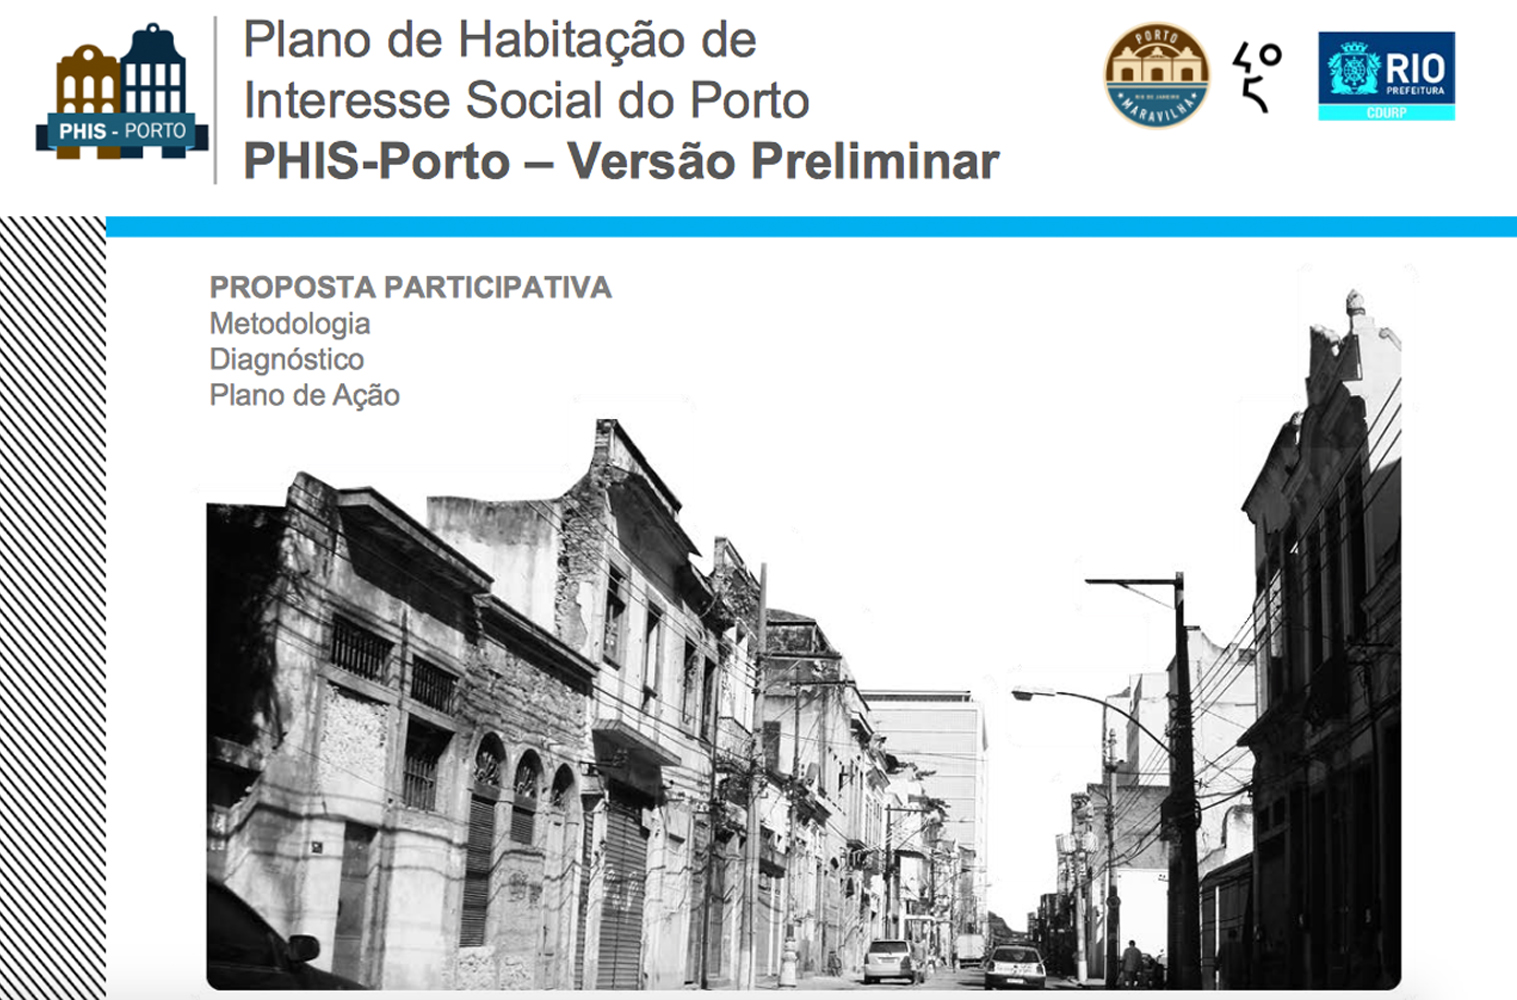 Rio Announces Participatory Housing in the Port Area